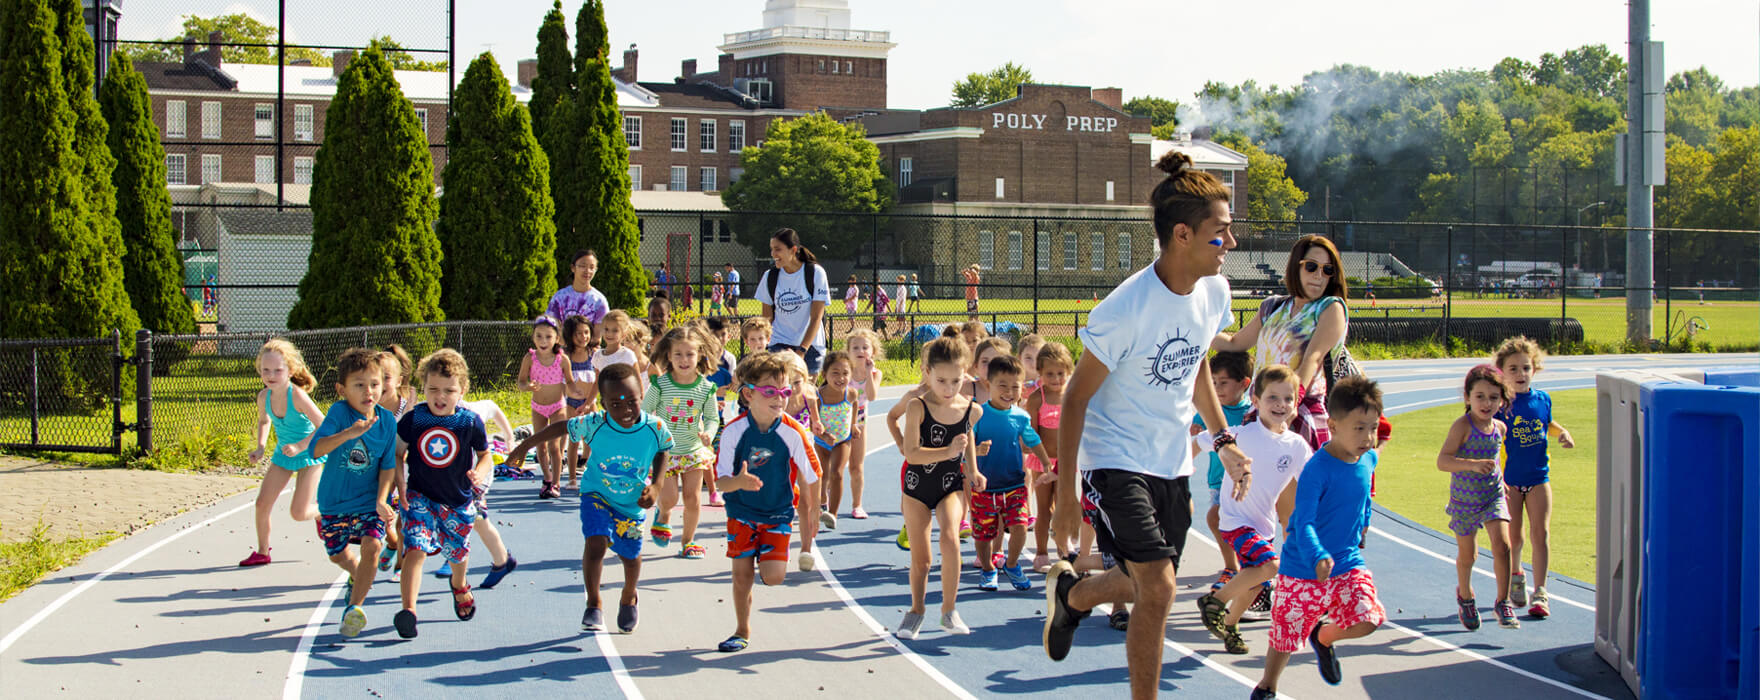 Poly Summer campers running on track